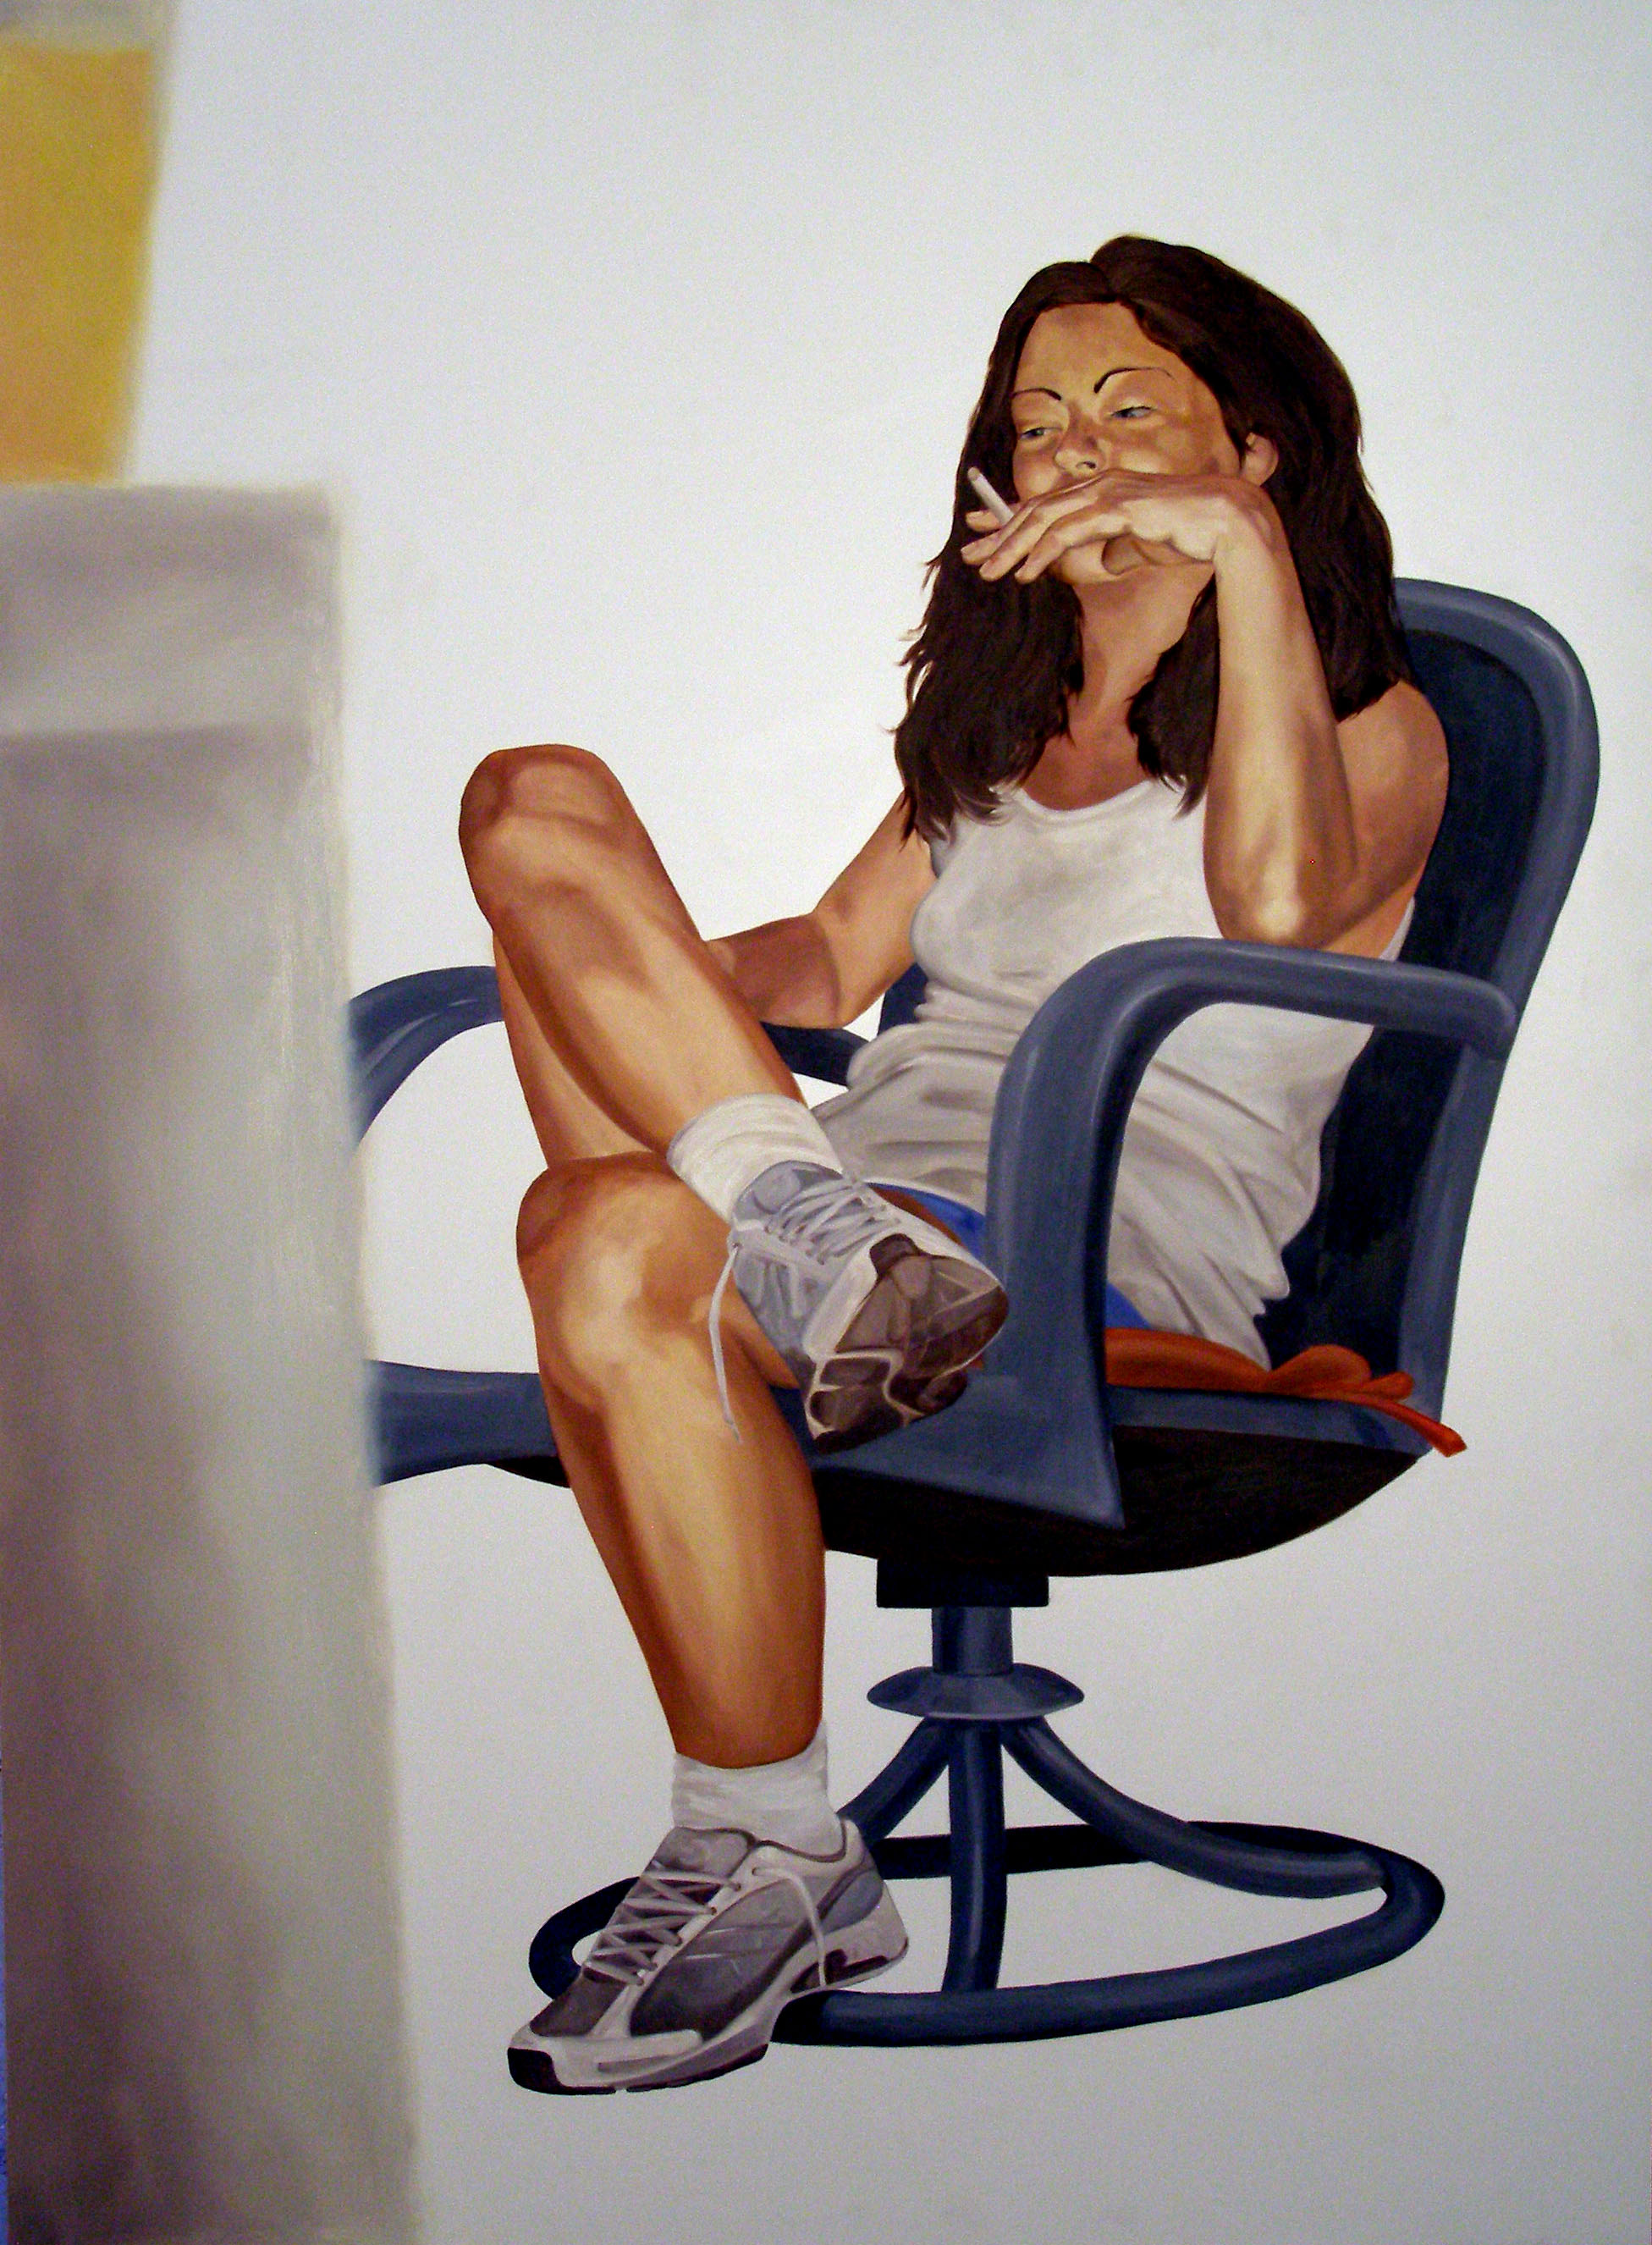 """Alone Together: September 28th, 10:23pm, 46""""x 34"""", oil on laminate, 2007"""